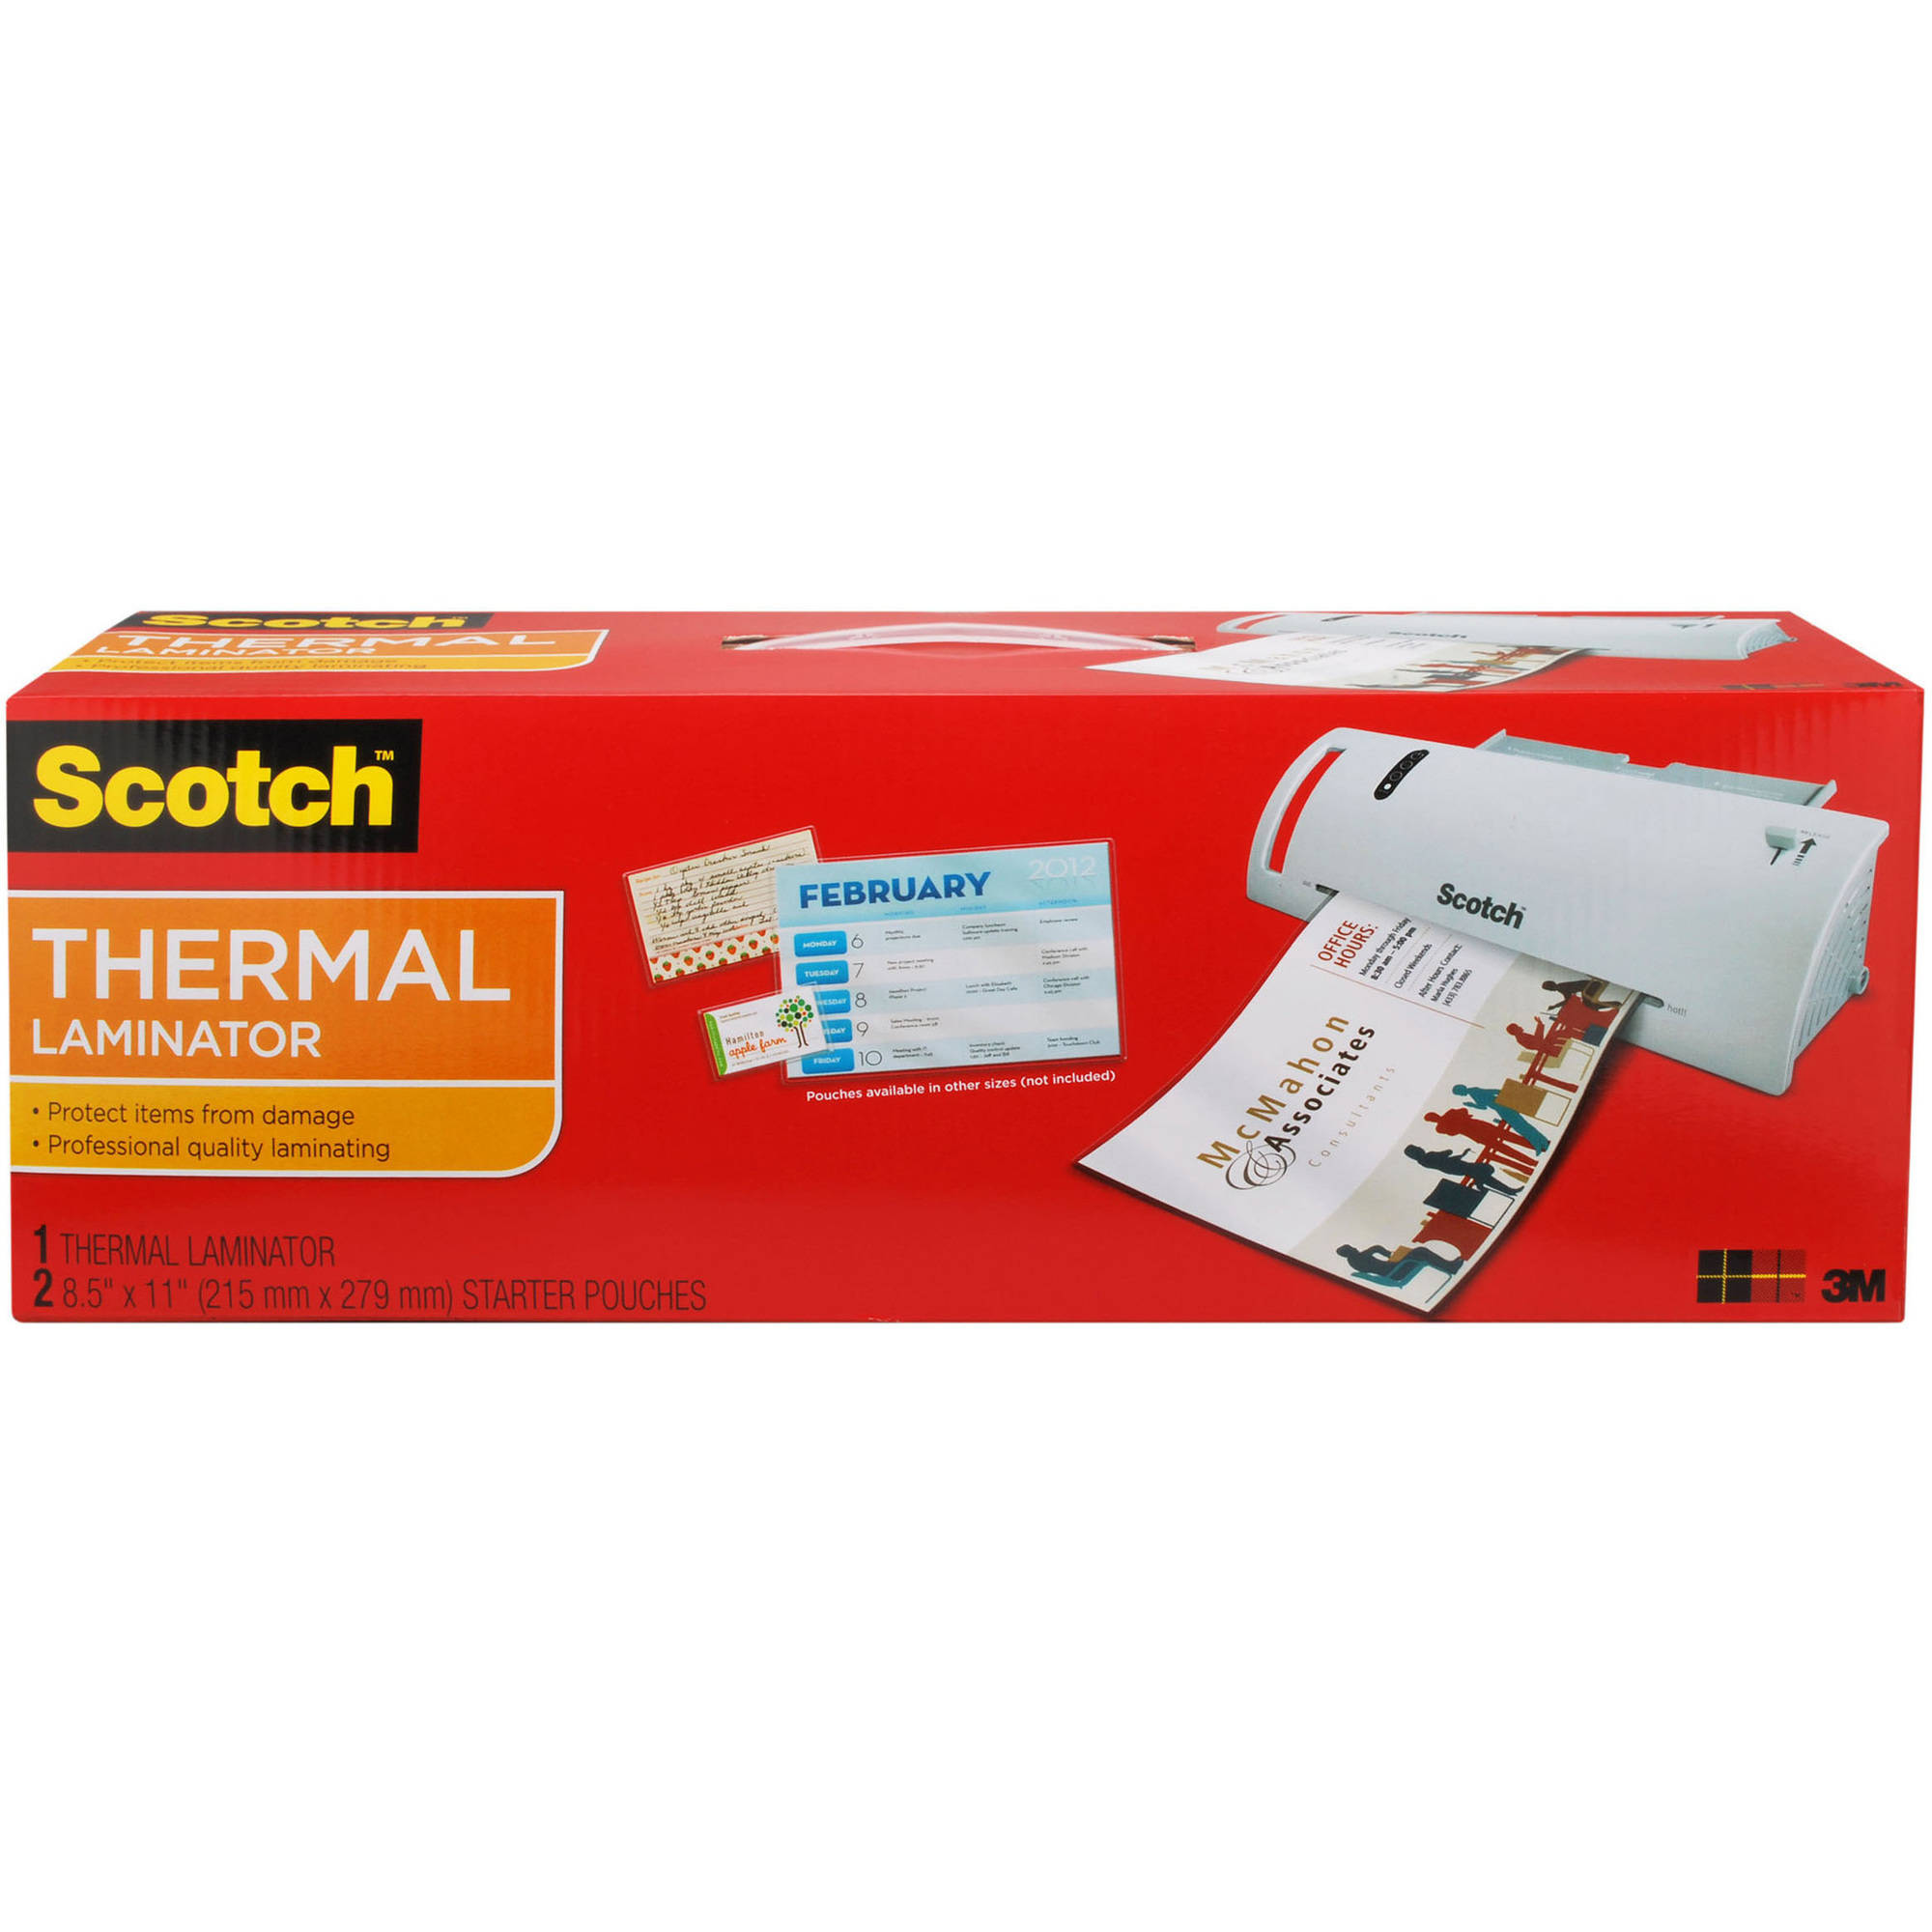 Scotch Thermal Laminator, 2 Roller